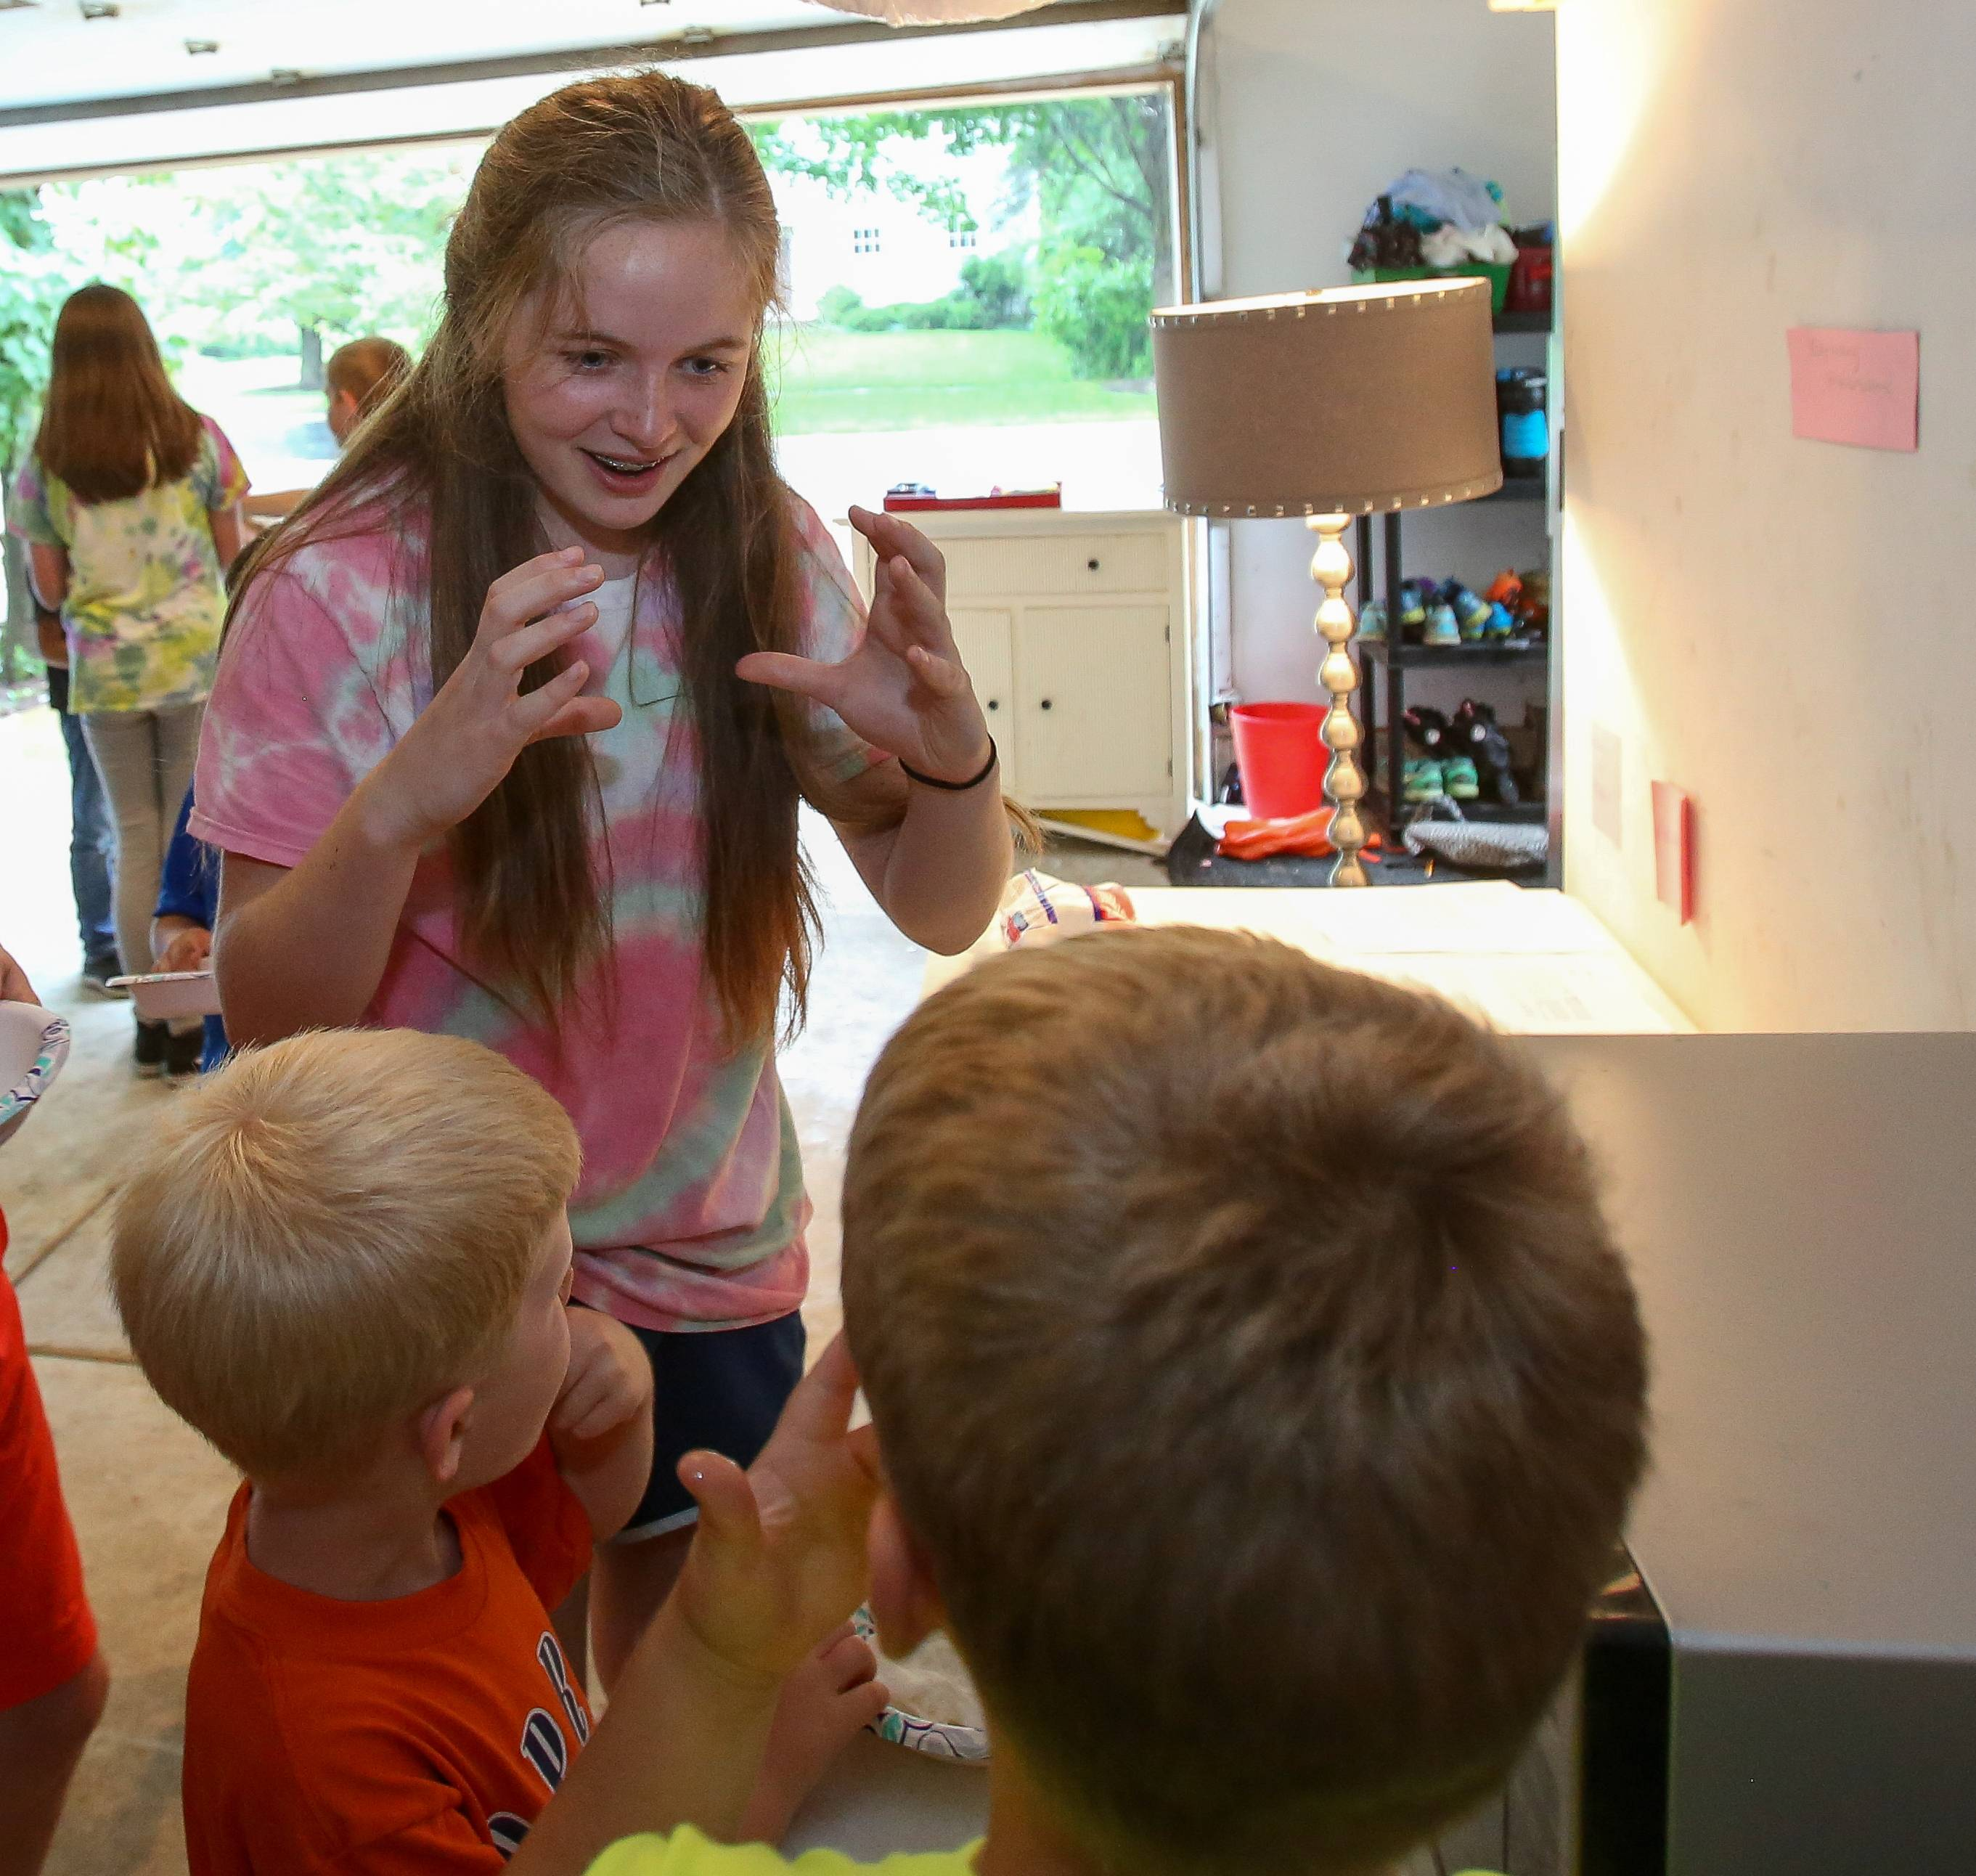 Addy Henninger, 13, works with kids in the science summer camp she started at age 11.